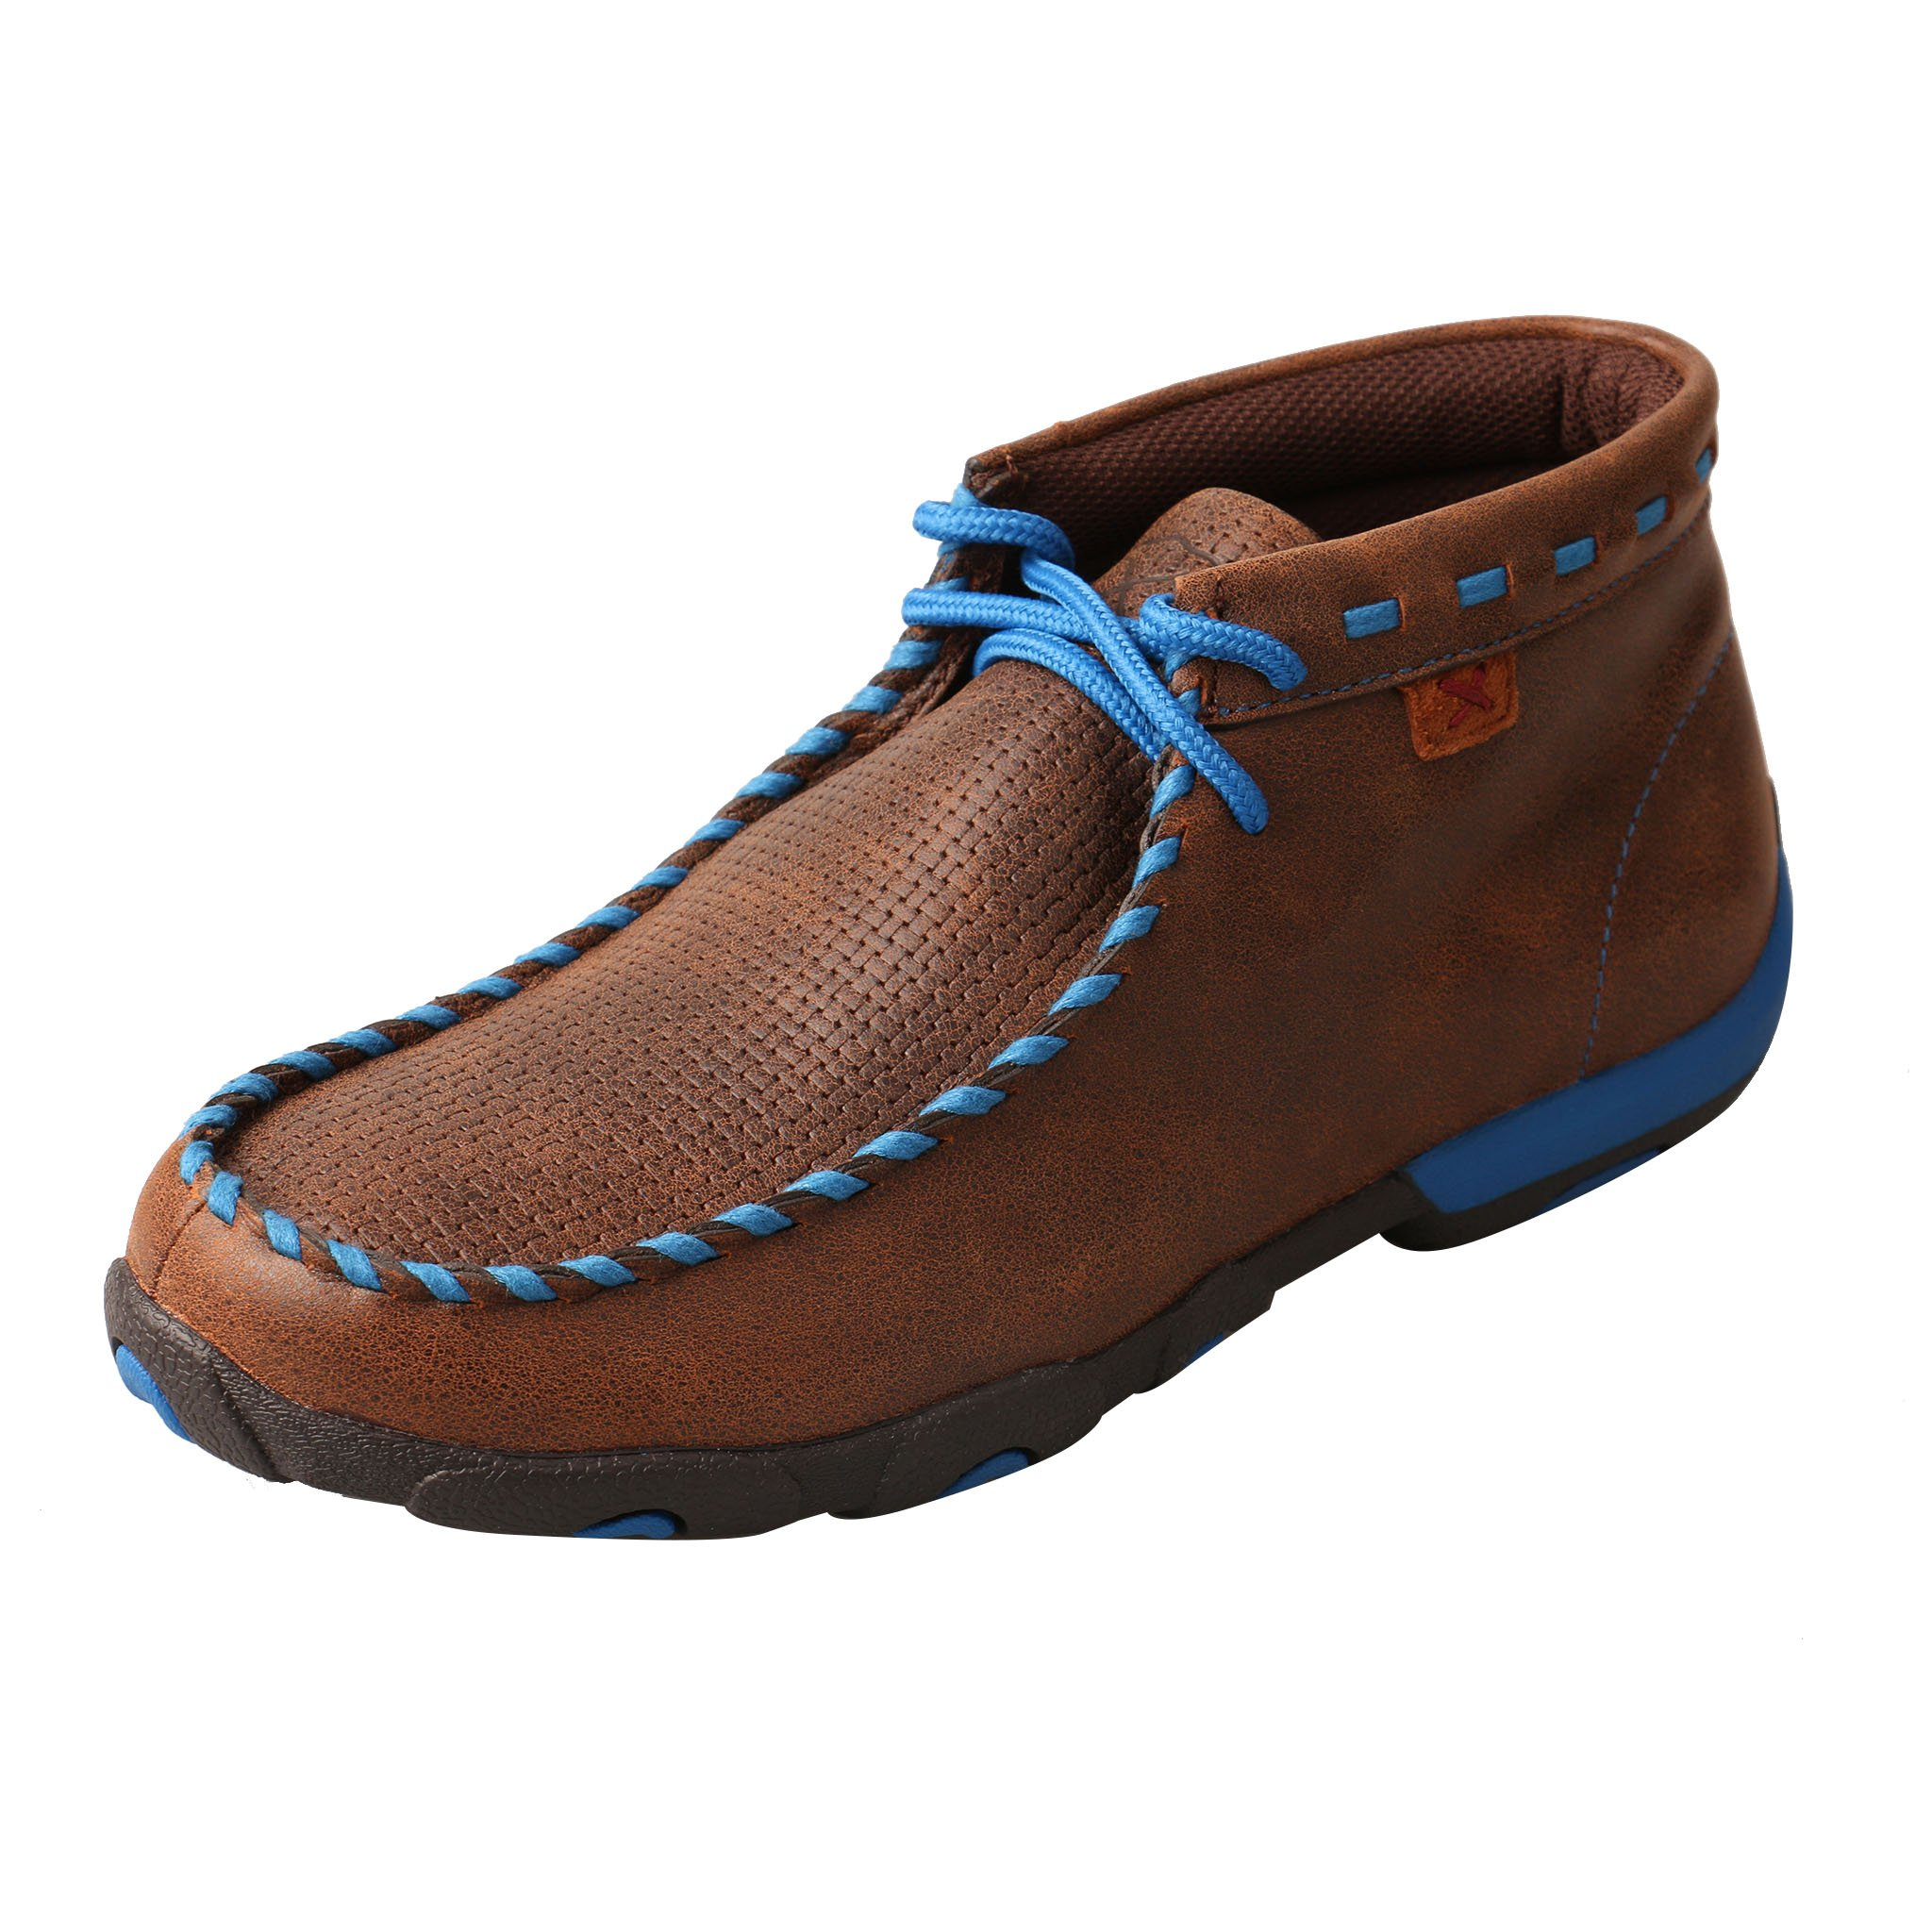 Twisted X Boots Women's WDM0052 Driving Moc,Brown/Blue Leather,US 7.5 M by Twisted X